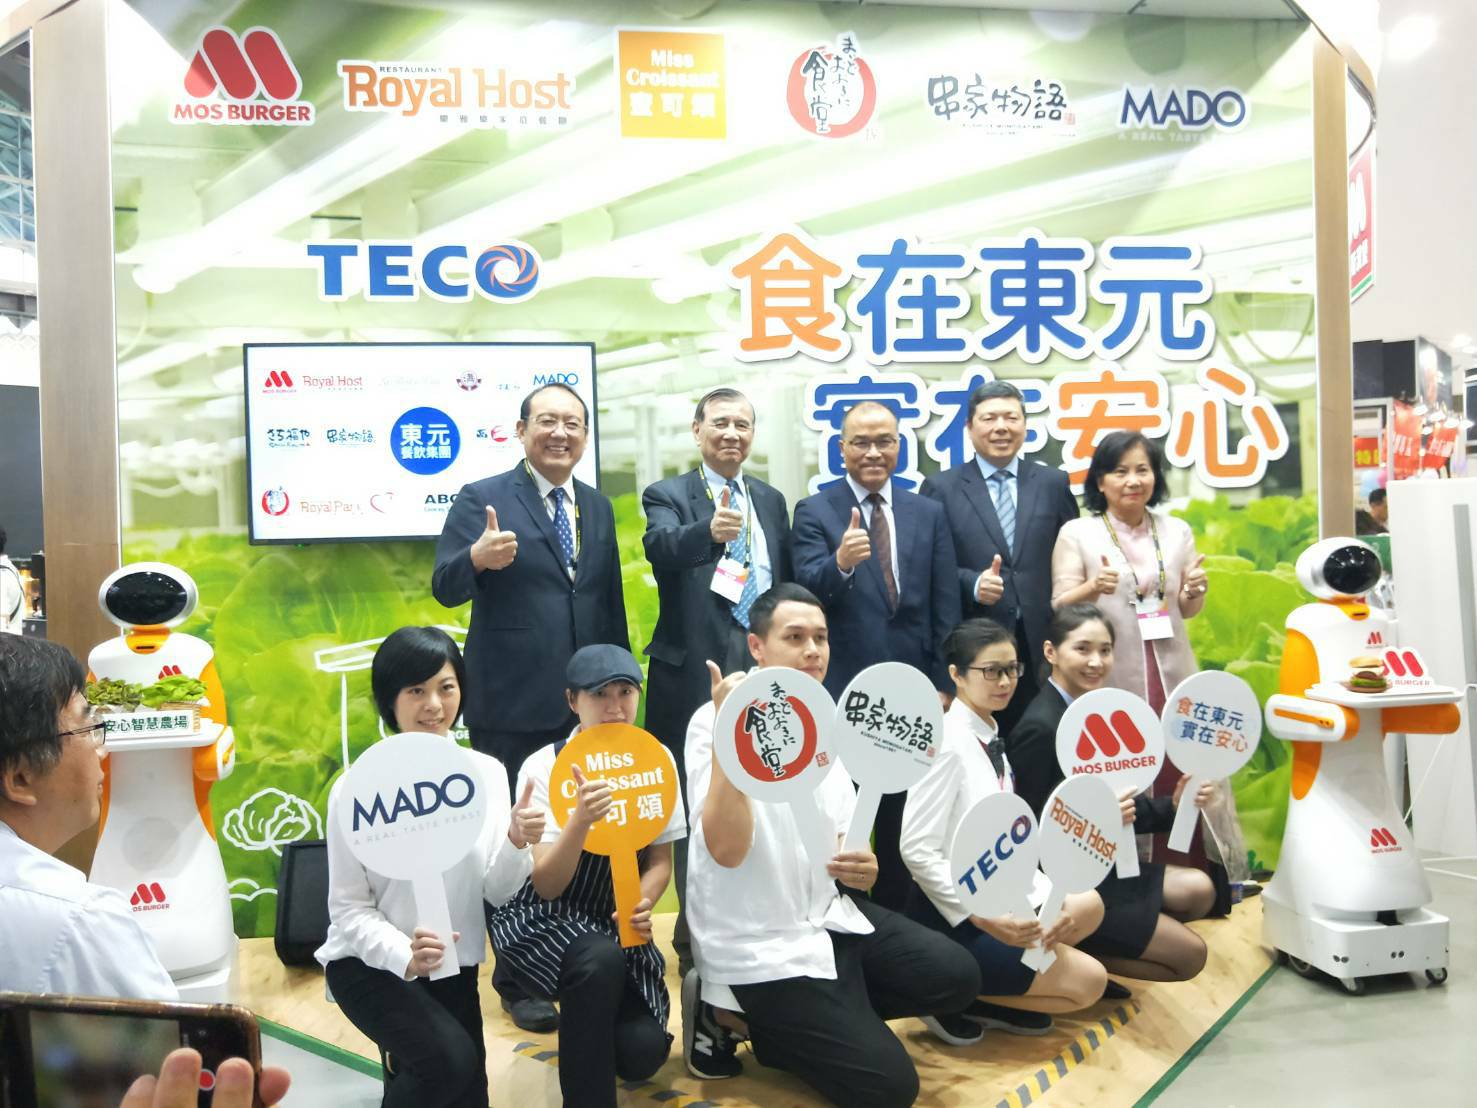 TECO Meal-Delivery Robot Shows Up at Kaohsiung Food Fair